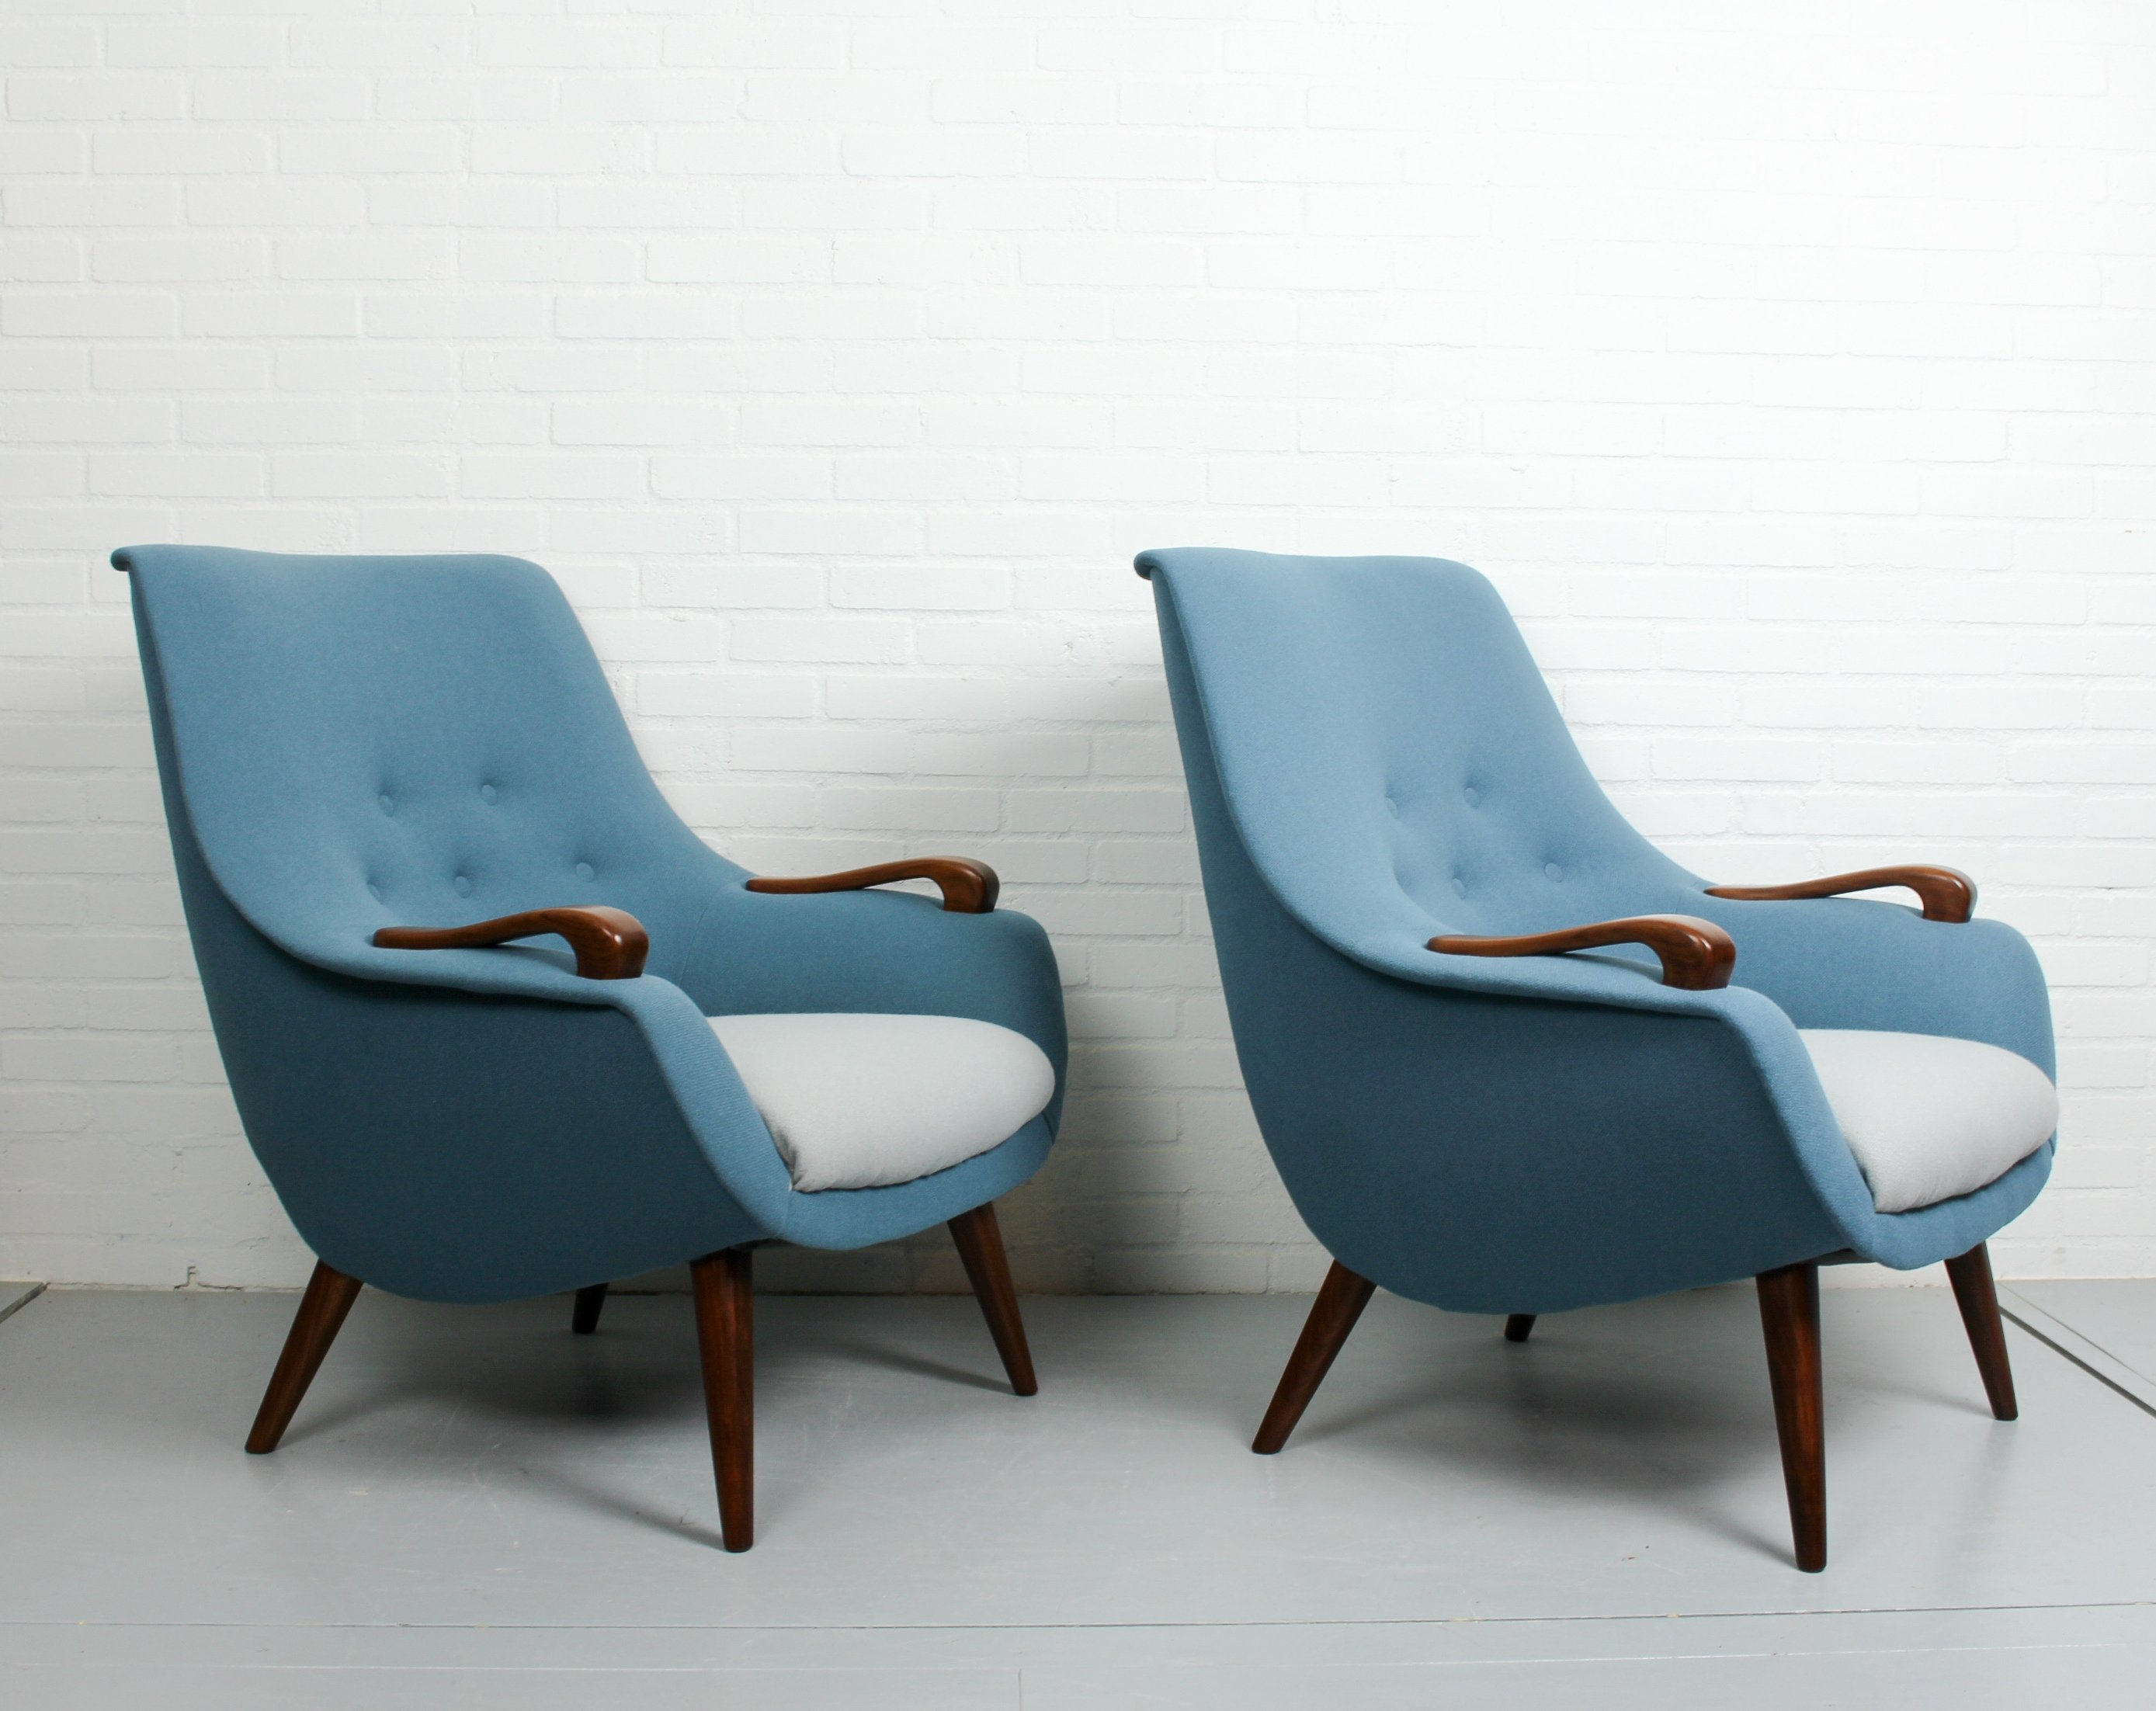 Pair Of Vintage Lounge Chairs 1950s 71482